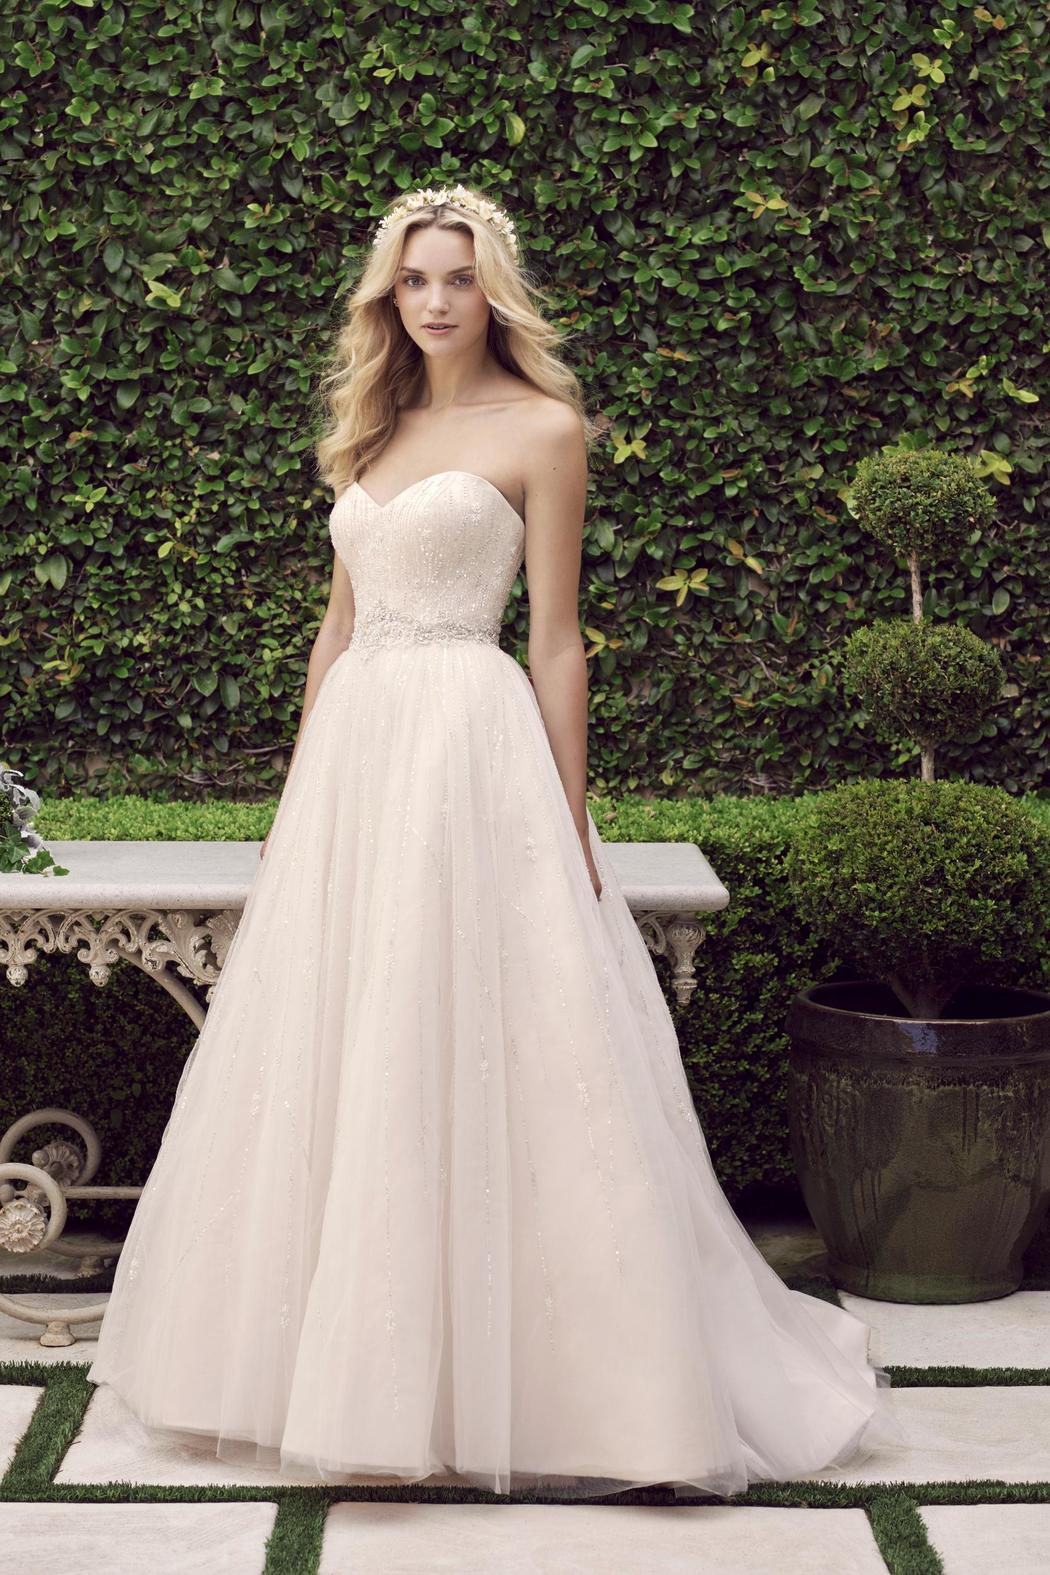 3941879dfcca Casablanca Bridal Tulle Ball Gown from Maryland by TLC Bridal ...